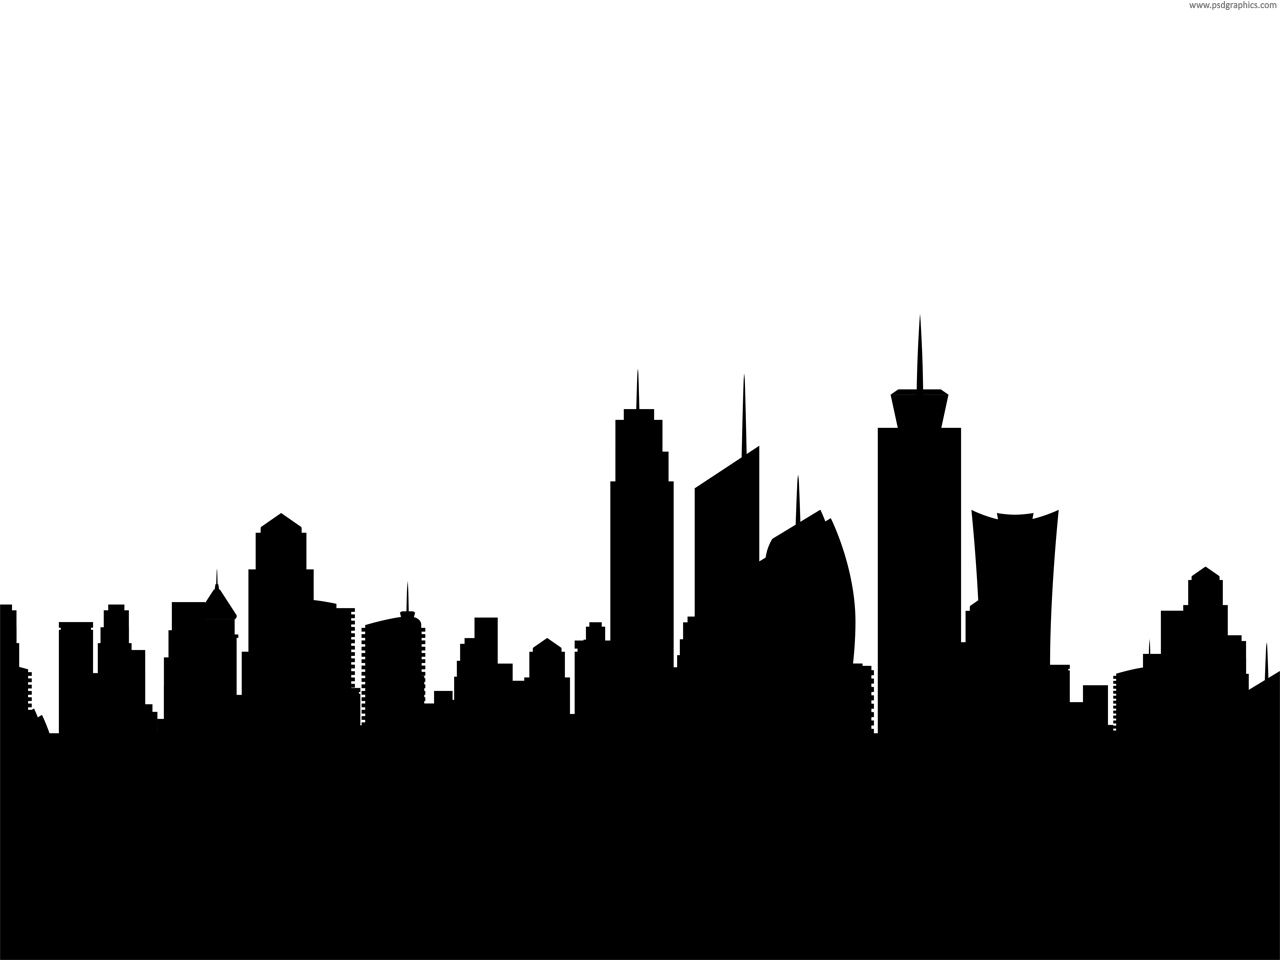 1280x960 City Skyline Silhouette Background Background Textures